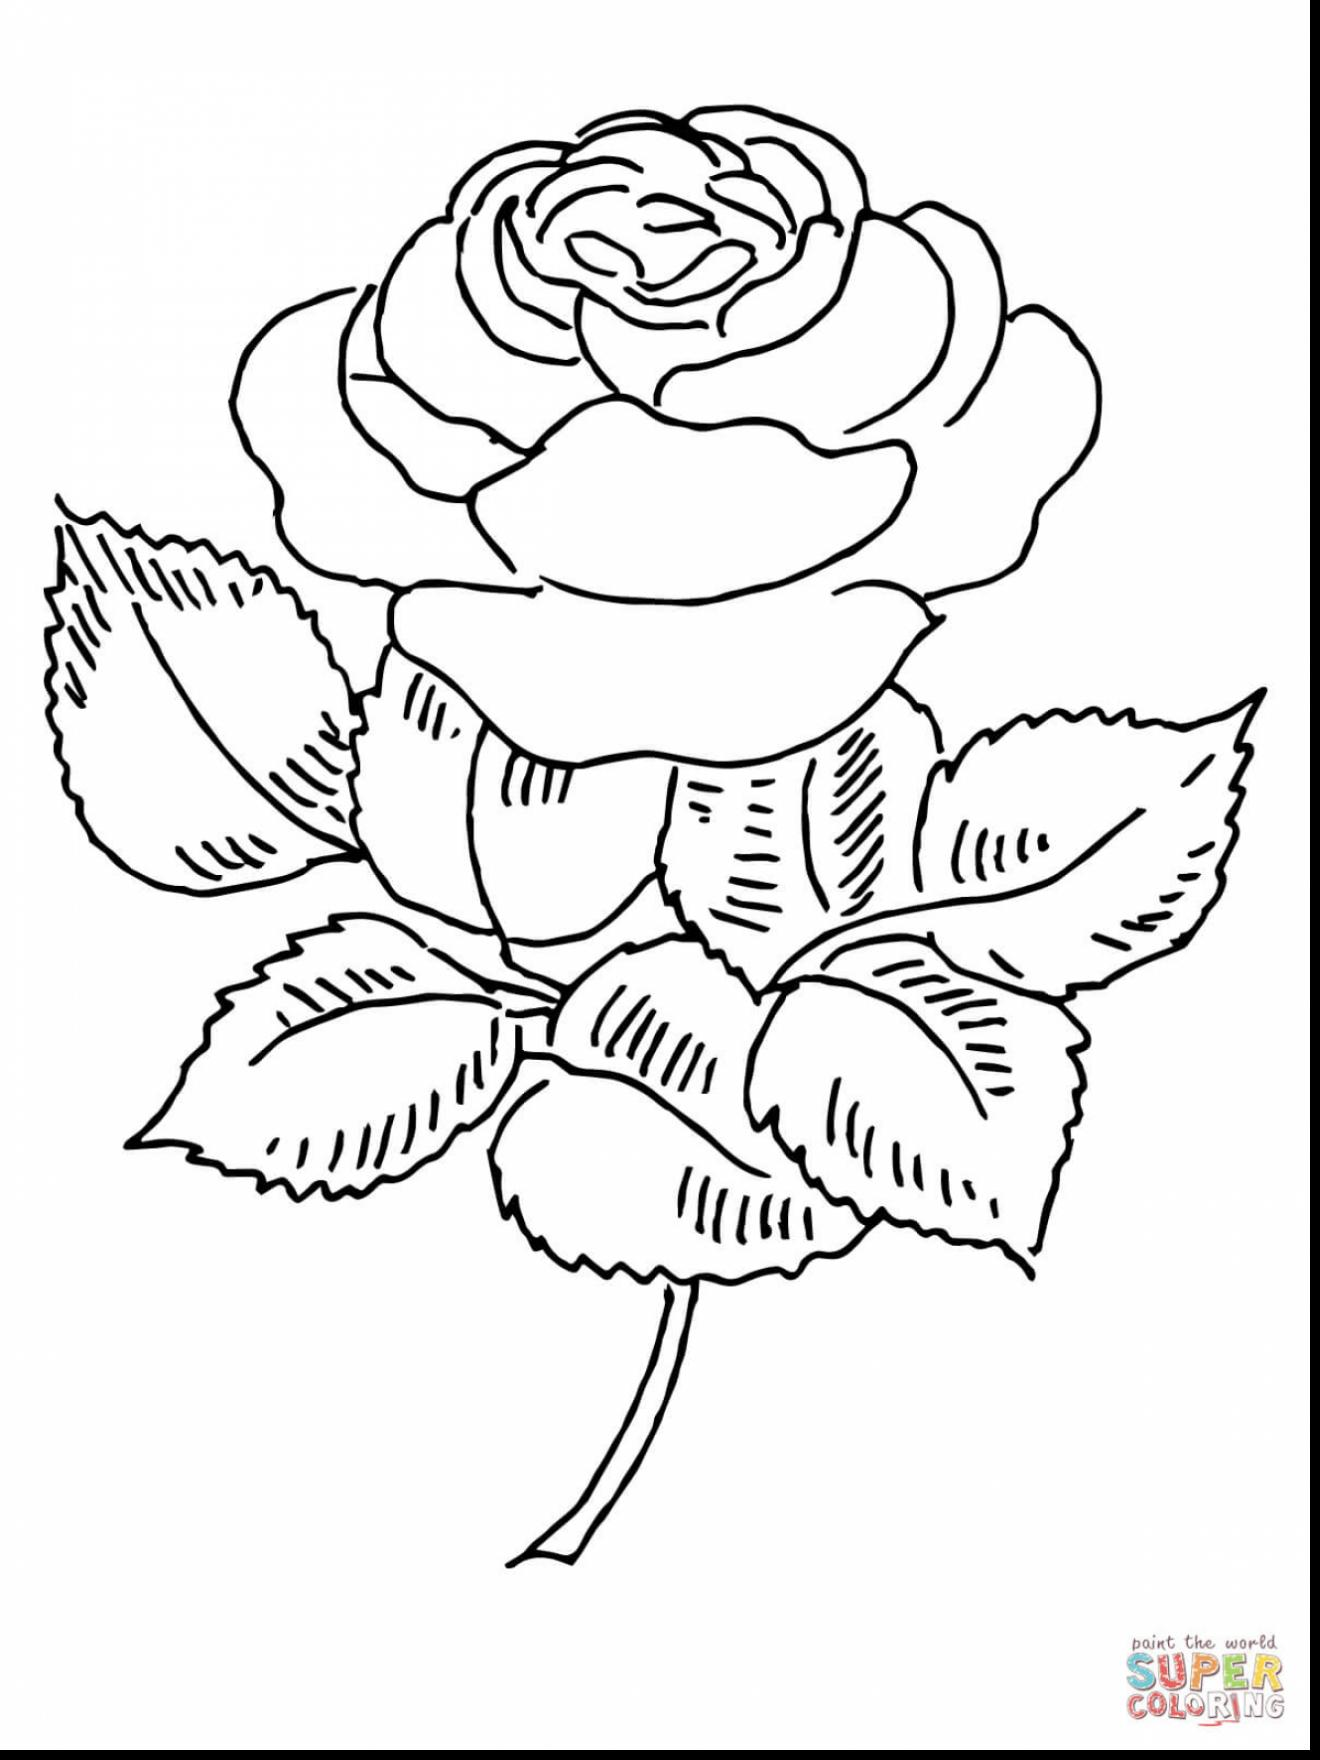 rose coloring book page get this online roses coloring pages for adults 88275 rose page book coloring